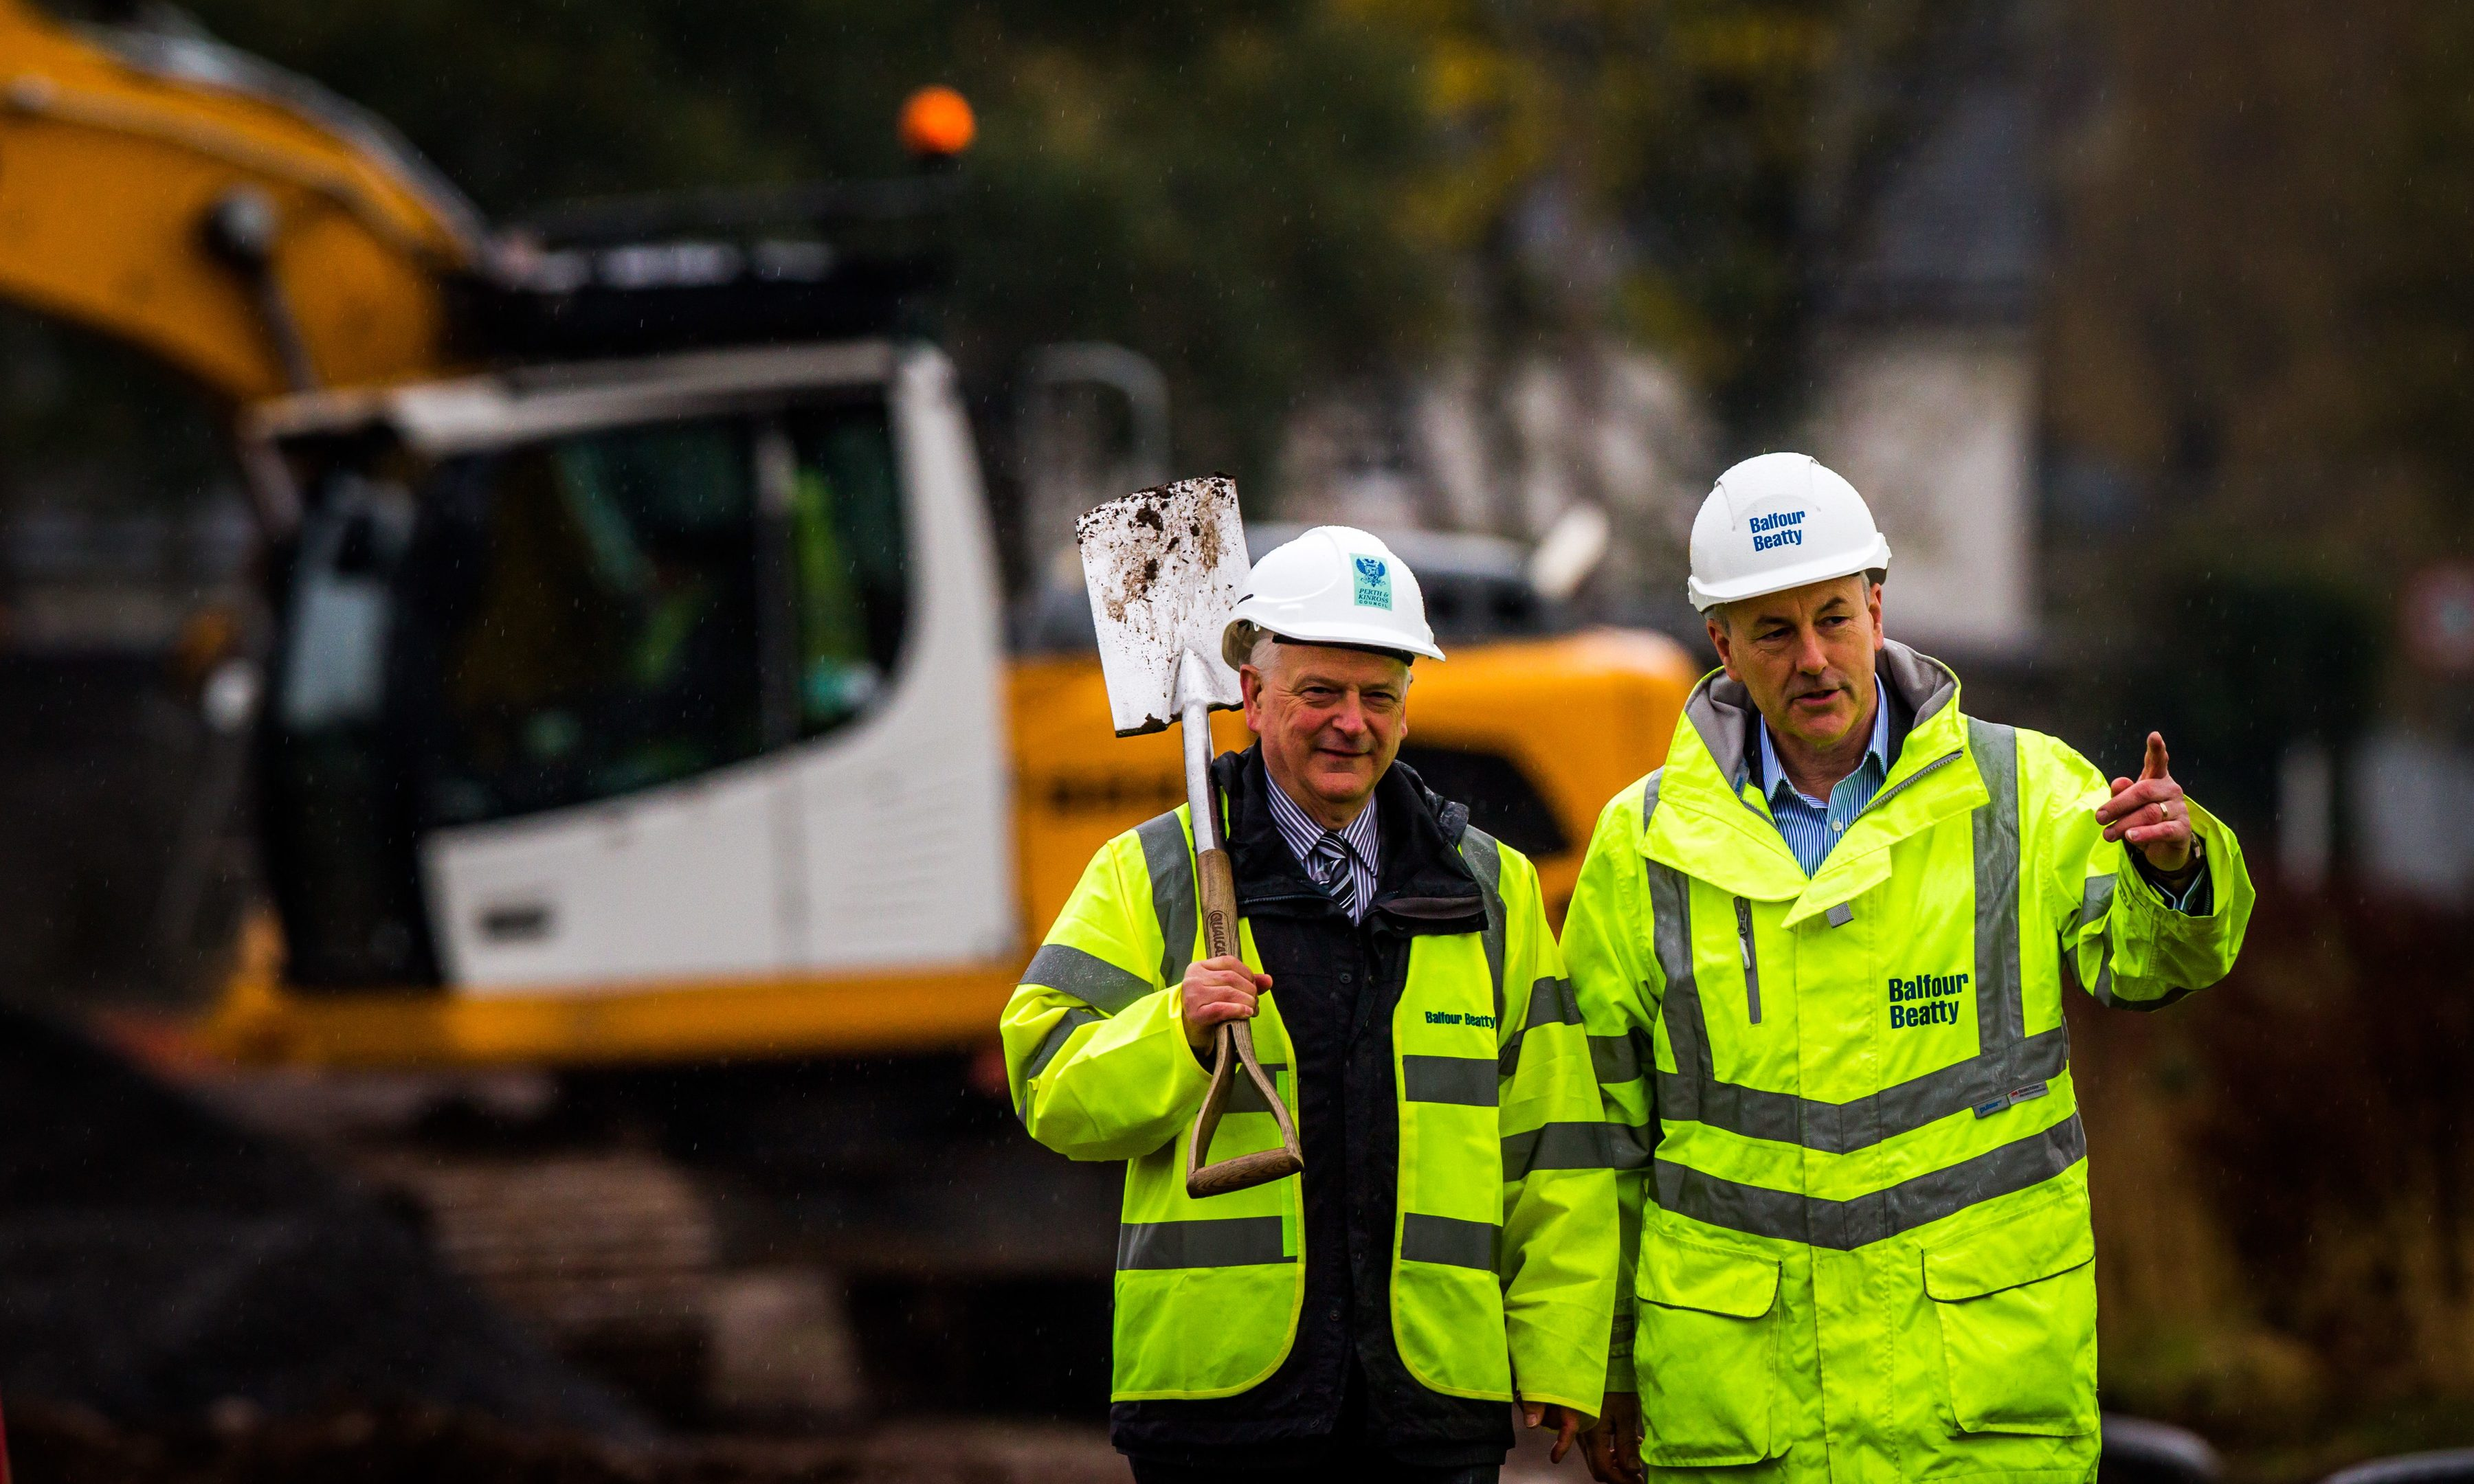 Councillor Ian Miller (Leader of Perth & Kinross Council) and (right) Hector MacAulay (Balfour Beatty Regional Managing Director, Scotland) on site. Site off Ruthvenfield Road, Inveralmond Industrial Estate, Perth.